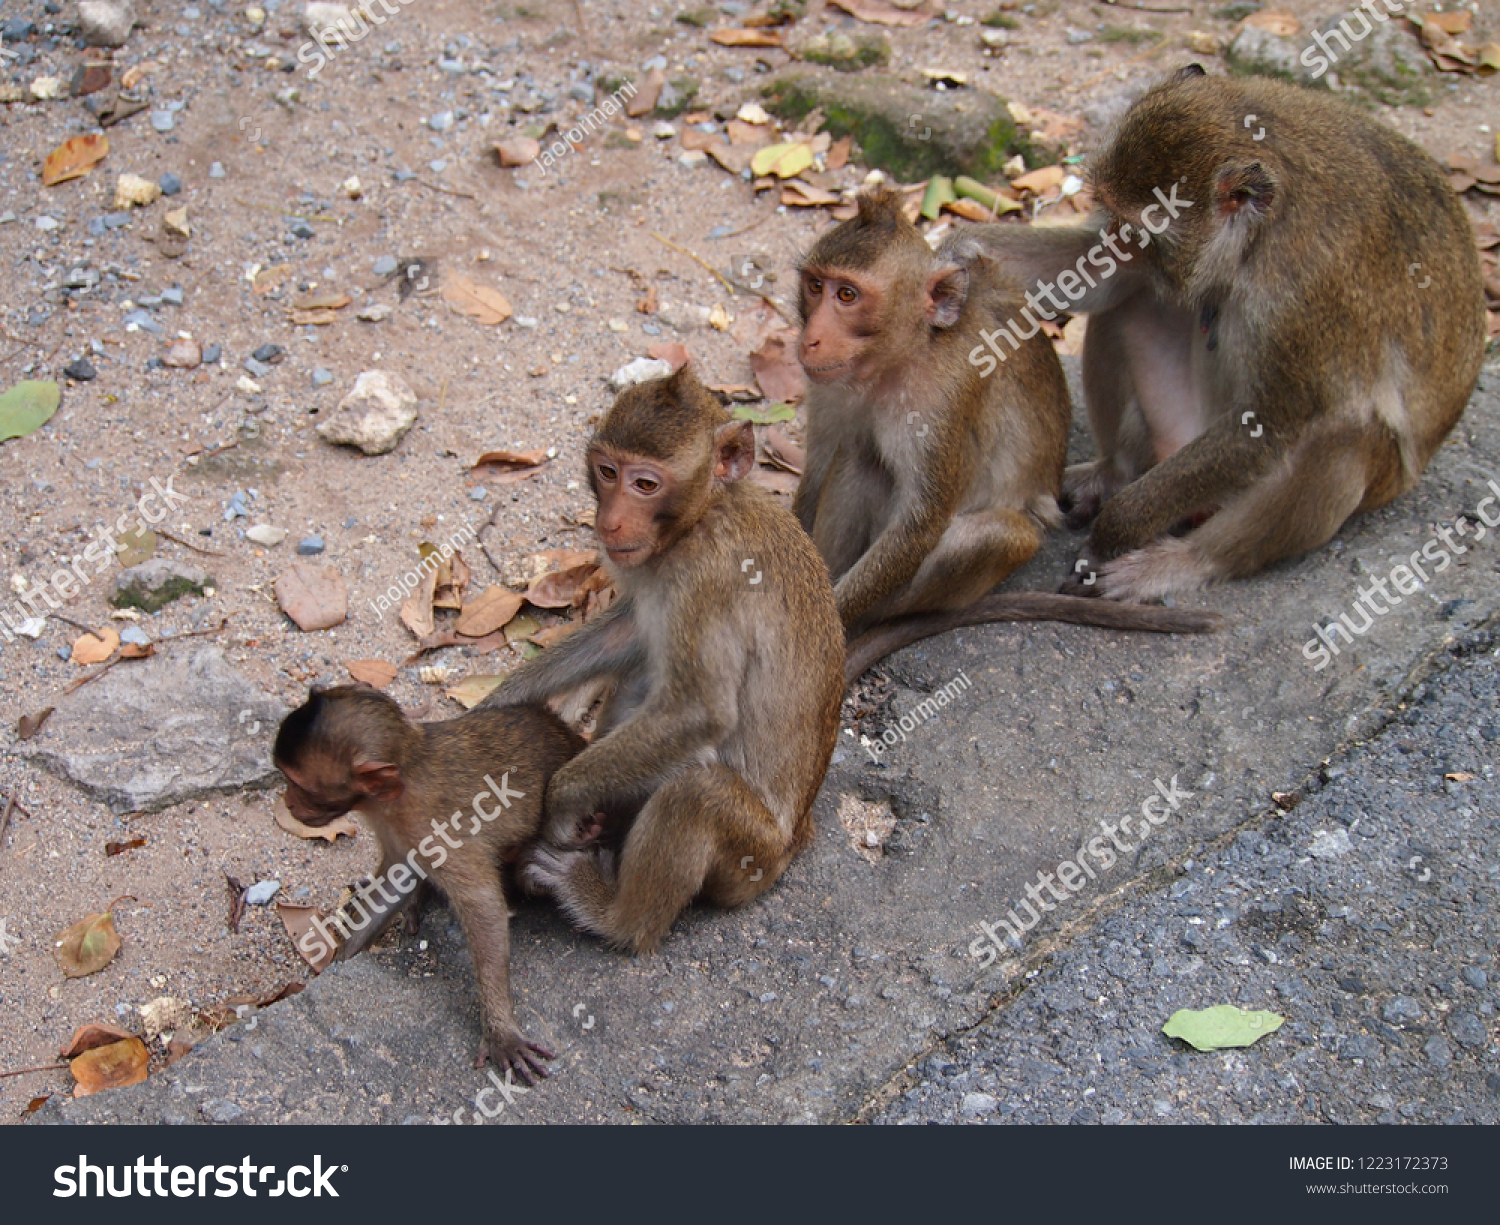 Squirrel Monkey Checking Fleas Tick Baby Stock Photo Edit Now 1223172373